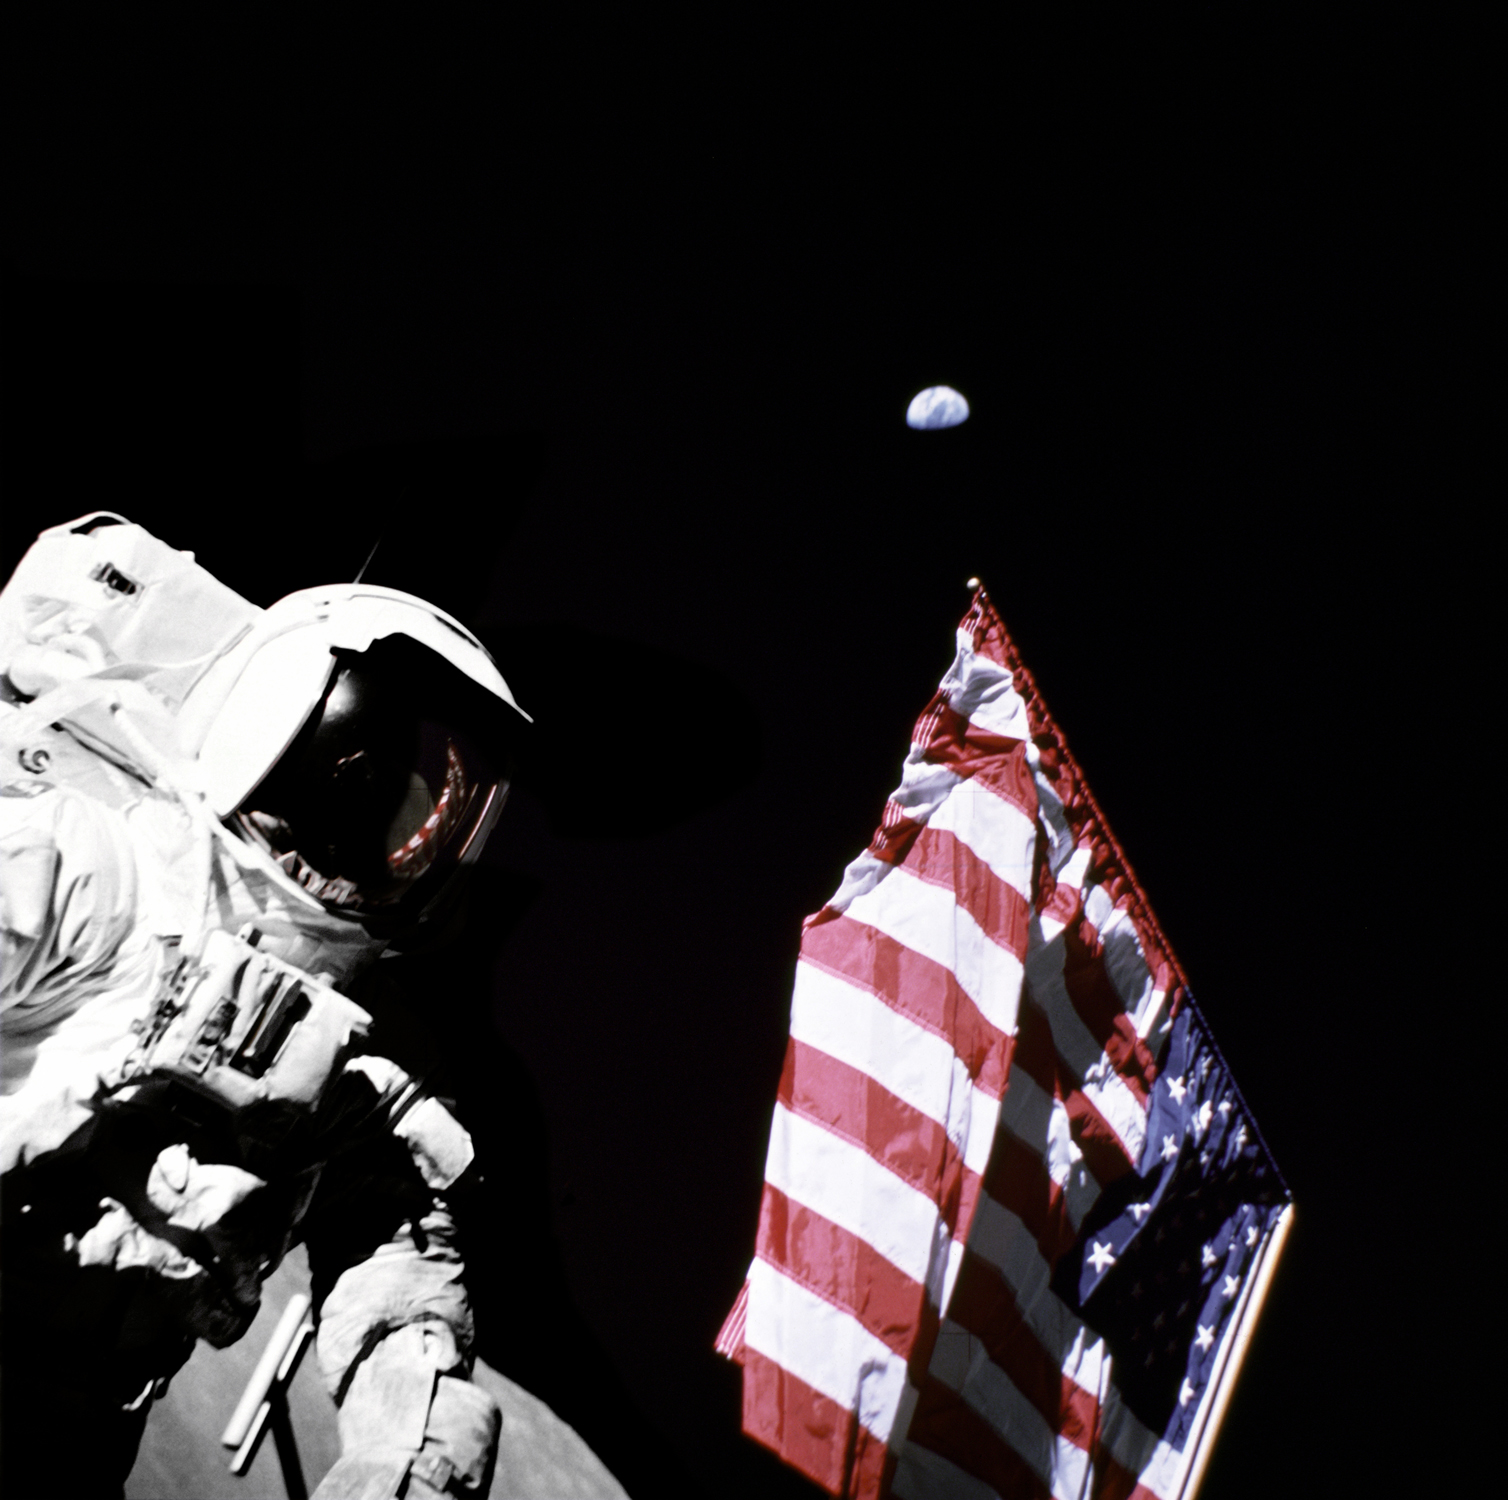 Space History Photo: Apollo 17 Astronaut Harrison Schmitt on the Moon